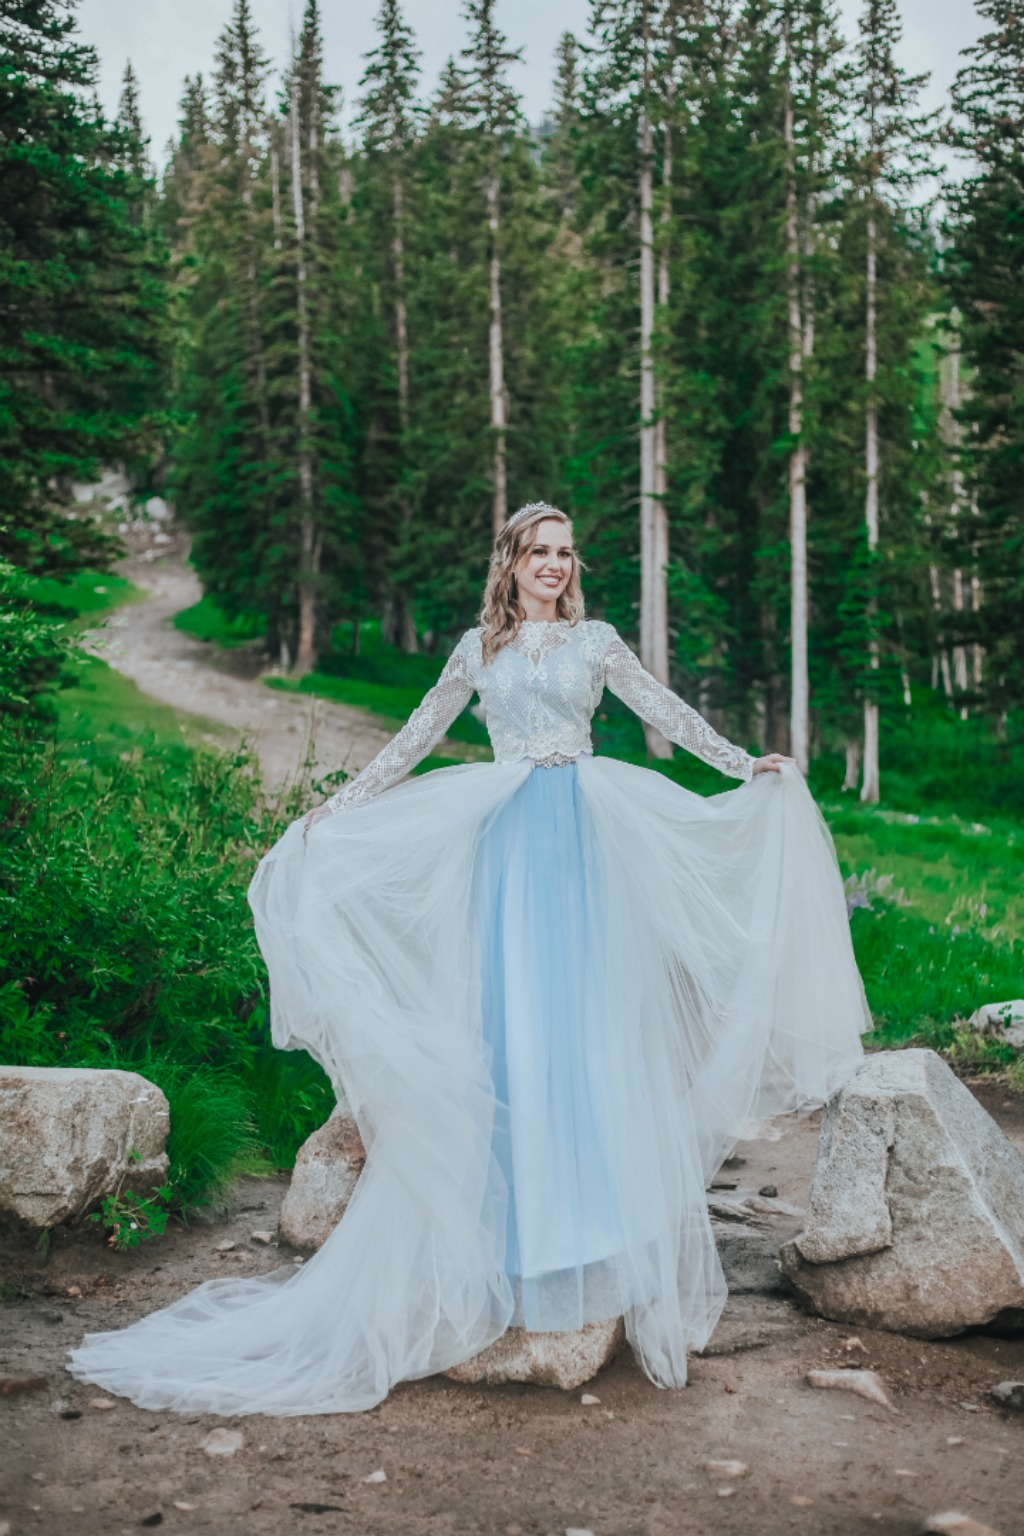 Longing for a custom made wedding gown? All gowns are custom made to order for each individual bride, in the USA. Choose from our